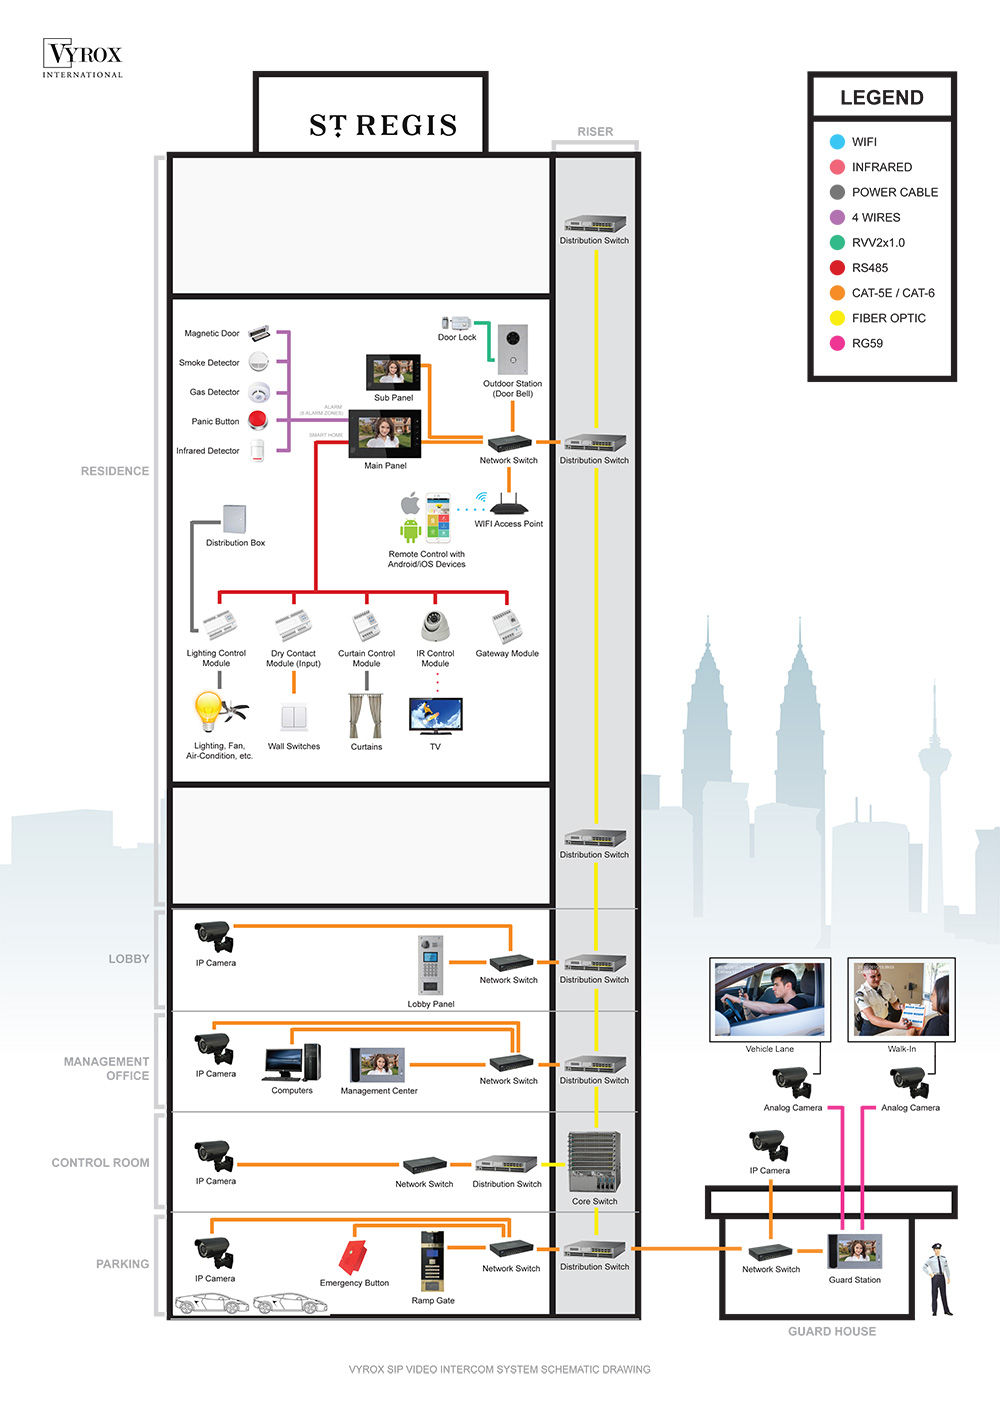 ST Regis Hotel Audio Video Intercom & Security system diagram